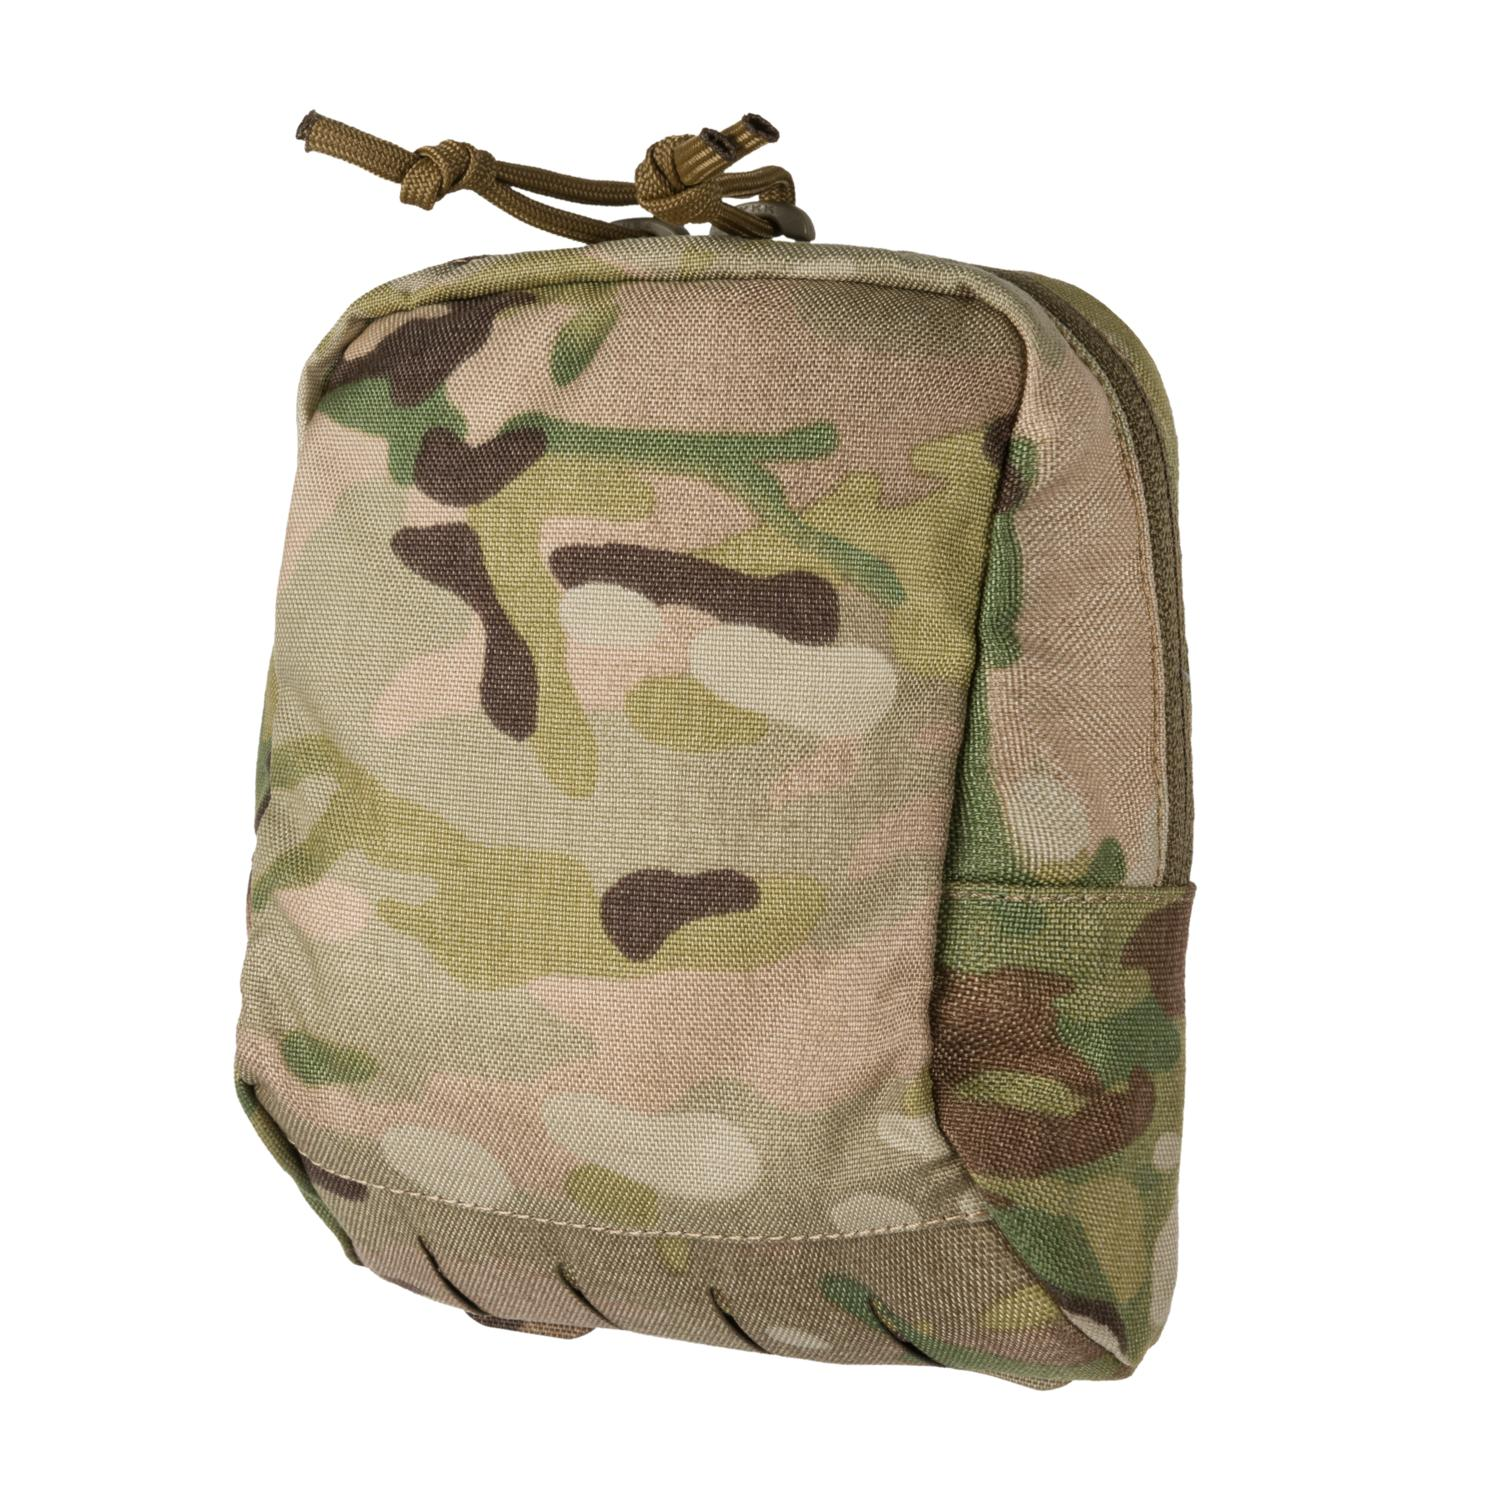 UTILITY POUCH - Small